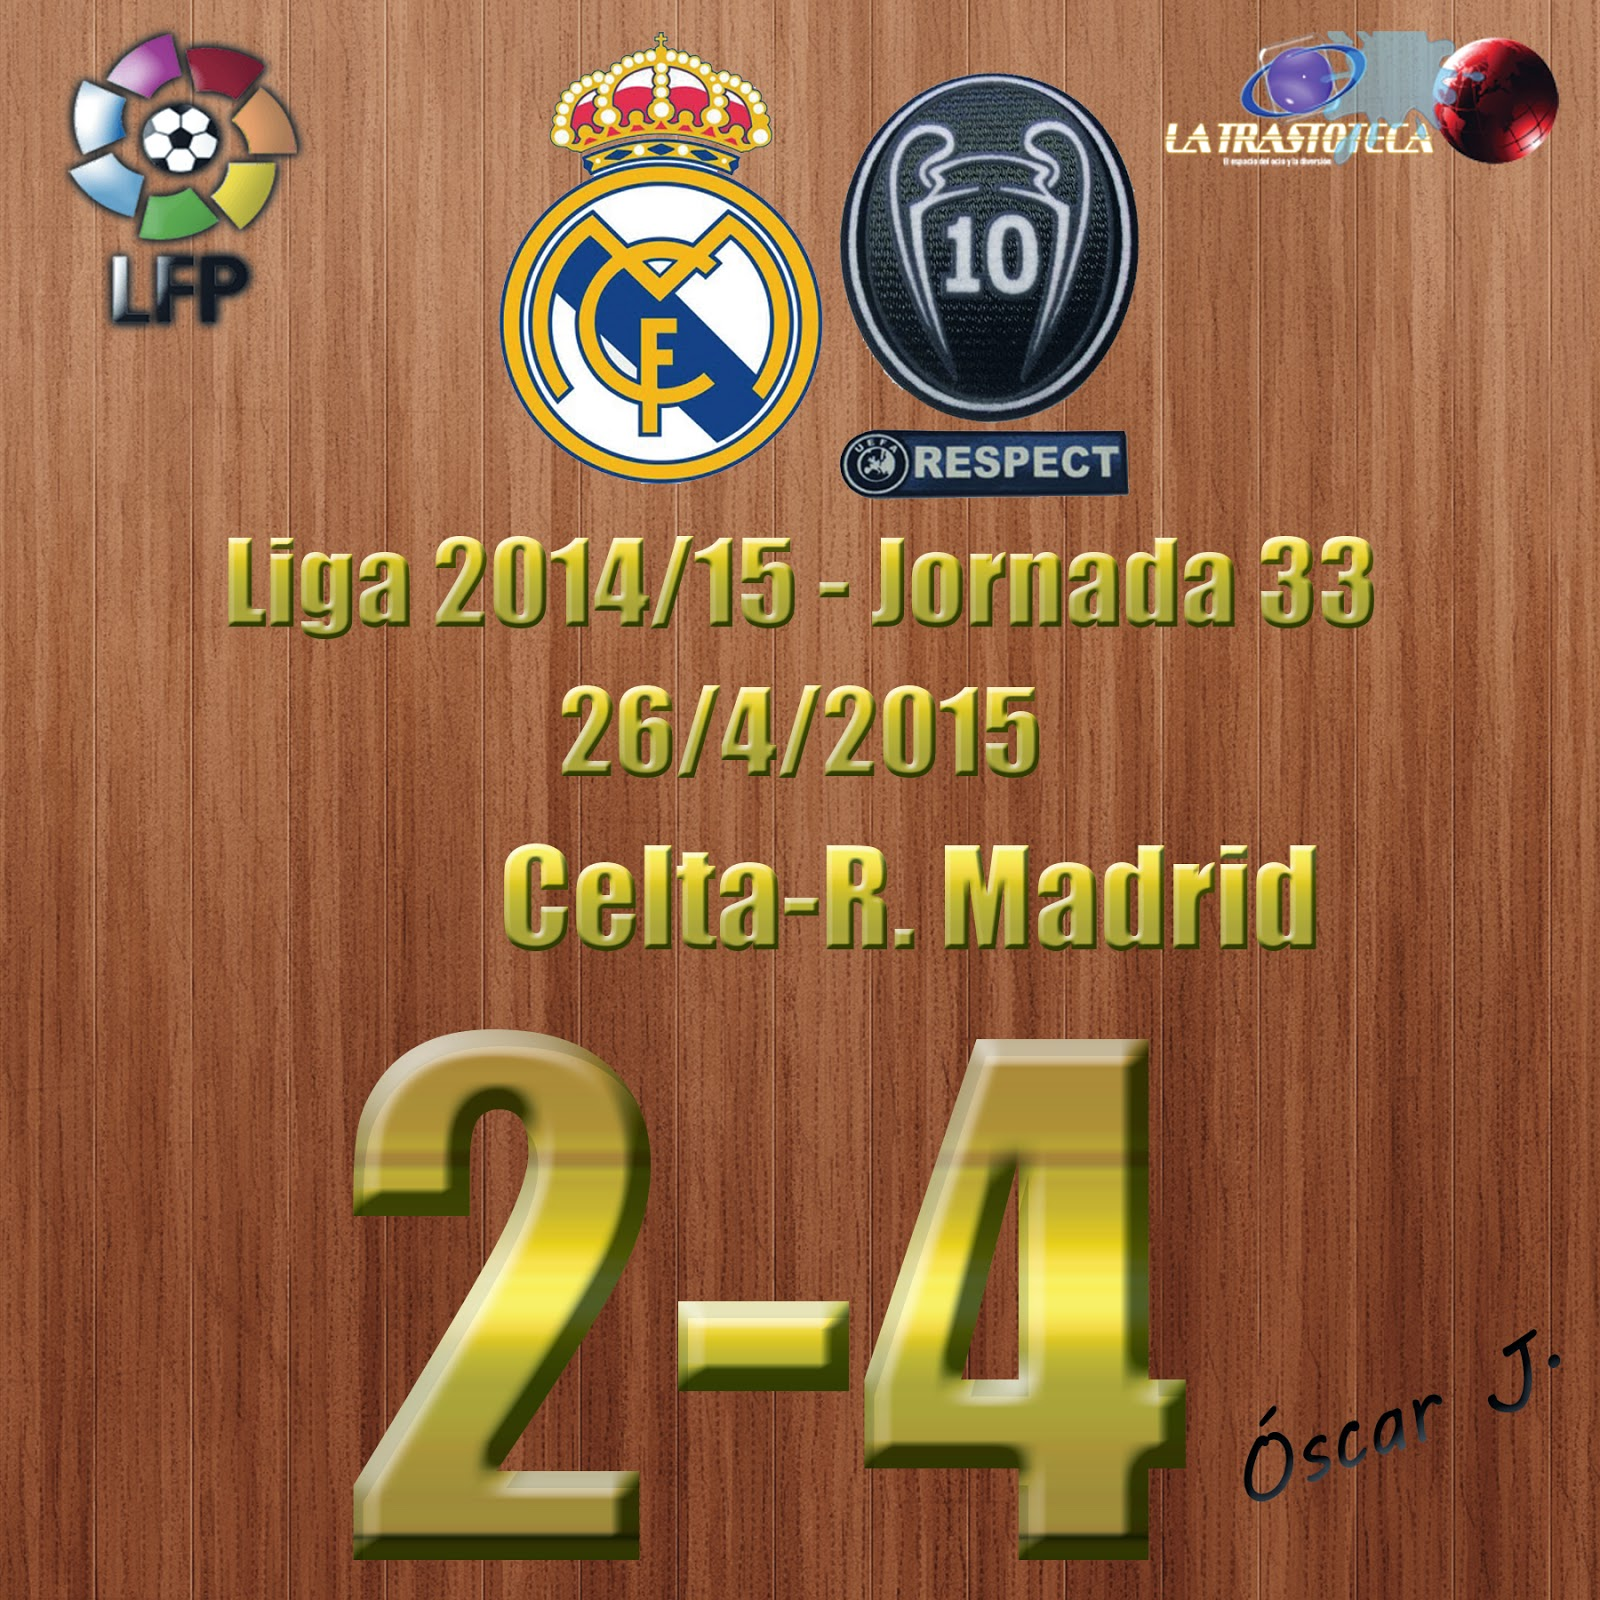 Chicharito (Doblete) - Celta 2-4 Real Madrid - Liga 2014/15 - Jornada 33 - (26/4/2015)